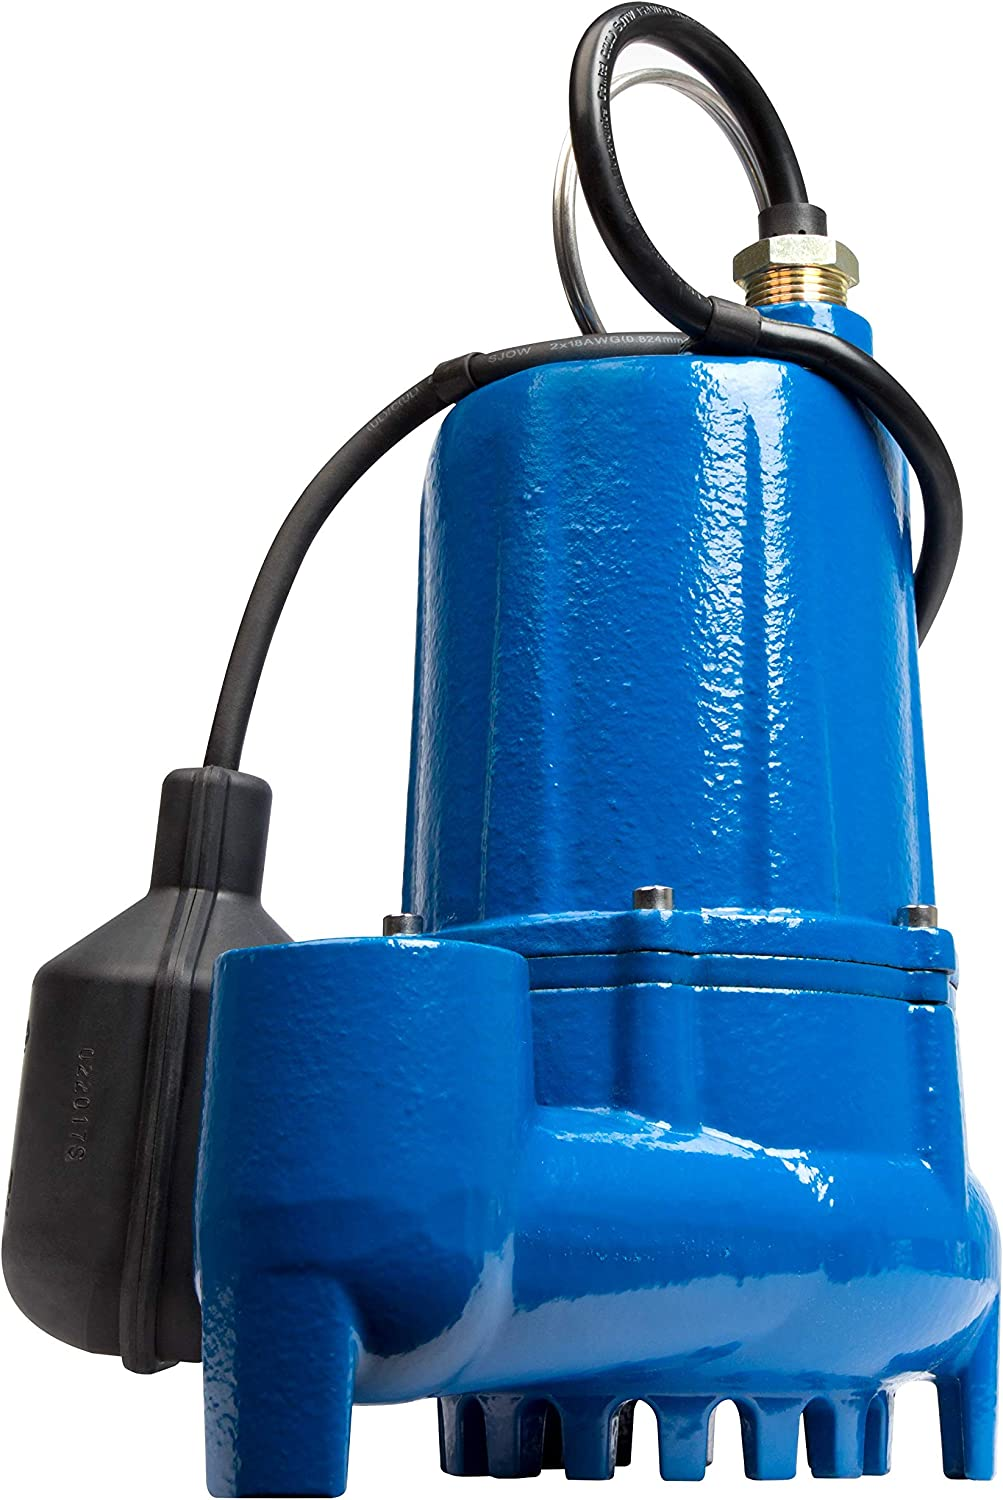 Little Giant LG-S50T 1/2 hp Cast Iron Sump Pump with Tethered Switch